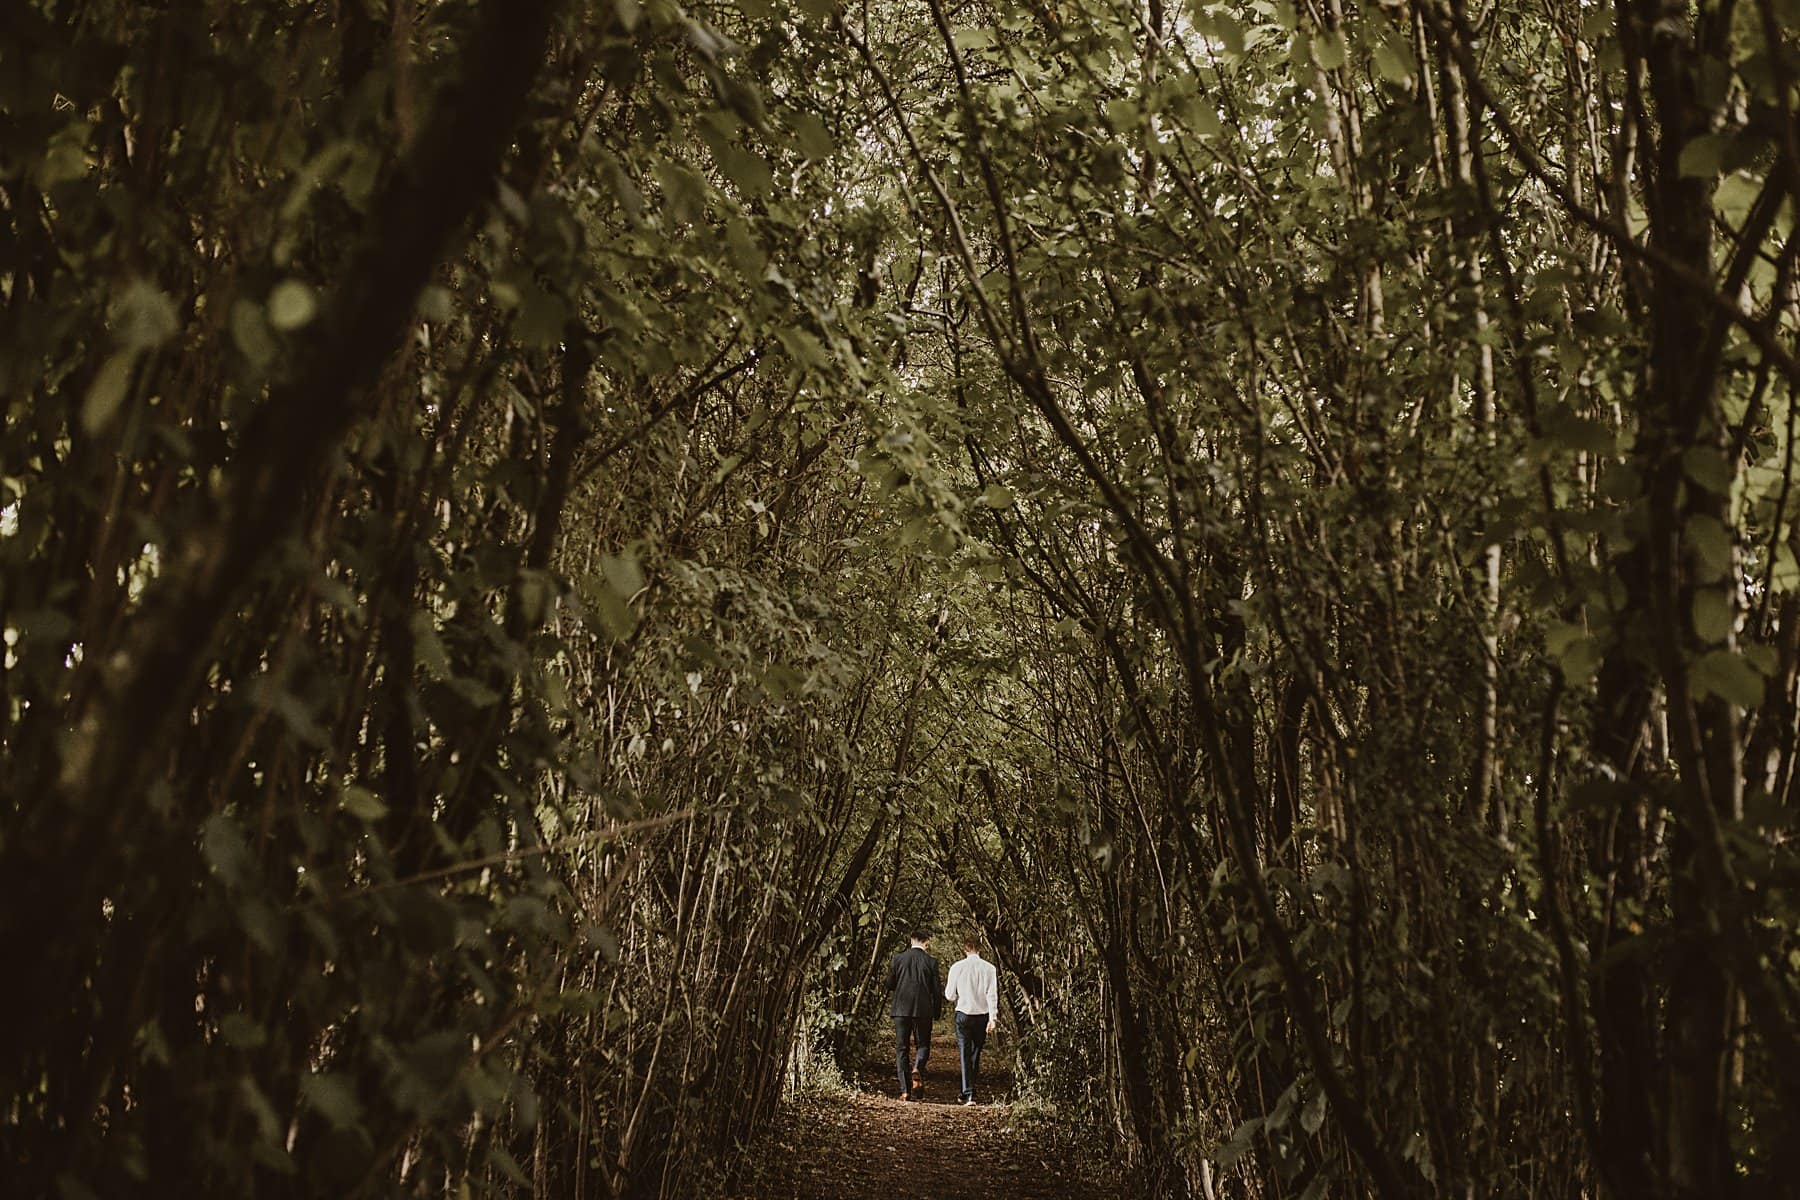 Nature corridor, men walking through